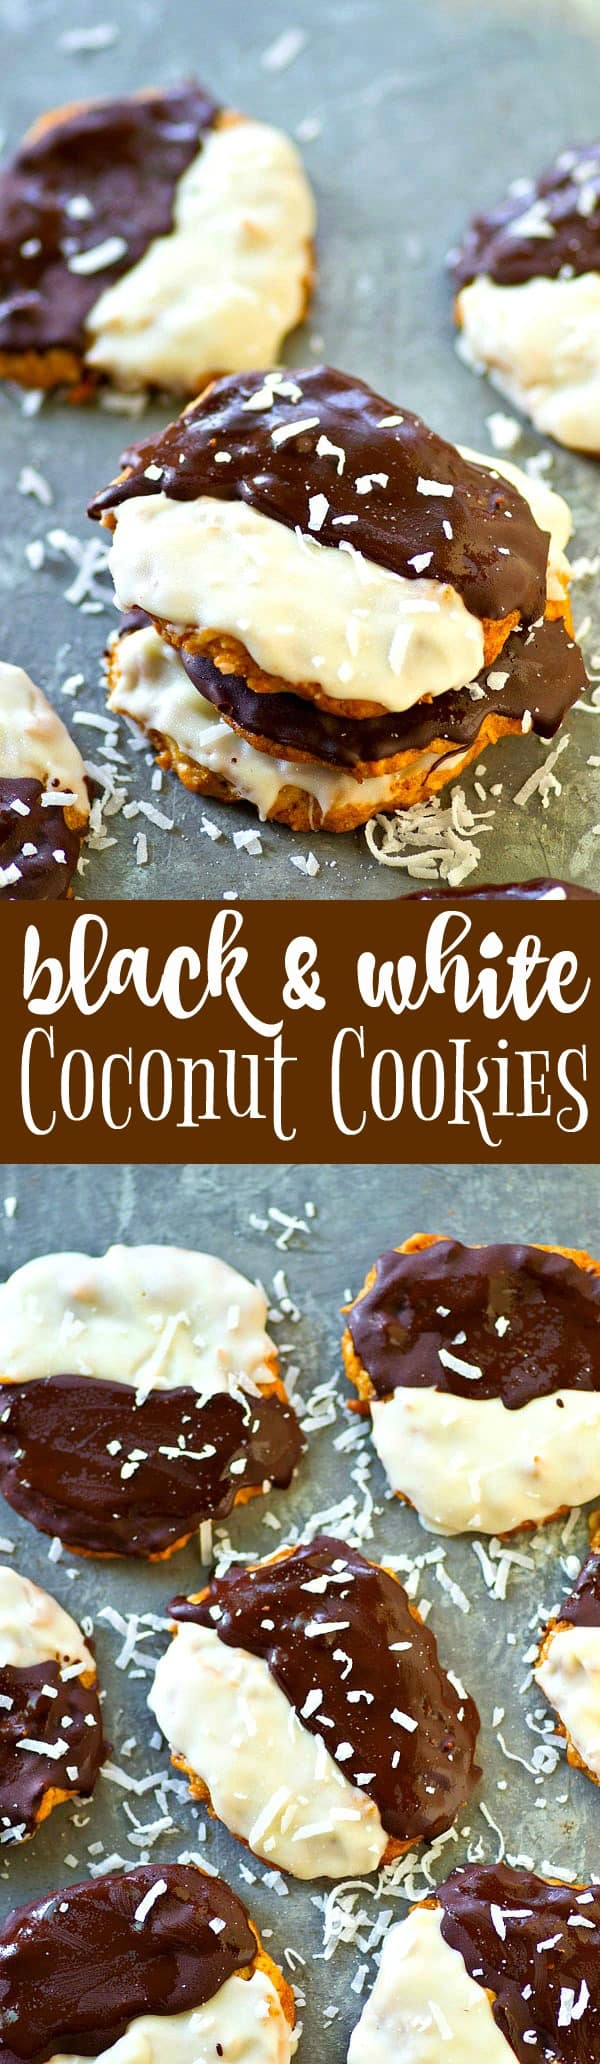 Crisp, chewy coconut cookies are dipped half in semisweet chocolate and half in white chocolate and the result is a batch of GORGEOUS black and white coconut cookies perfect for a fancier event.